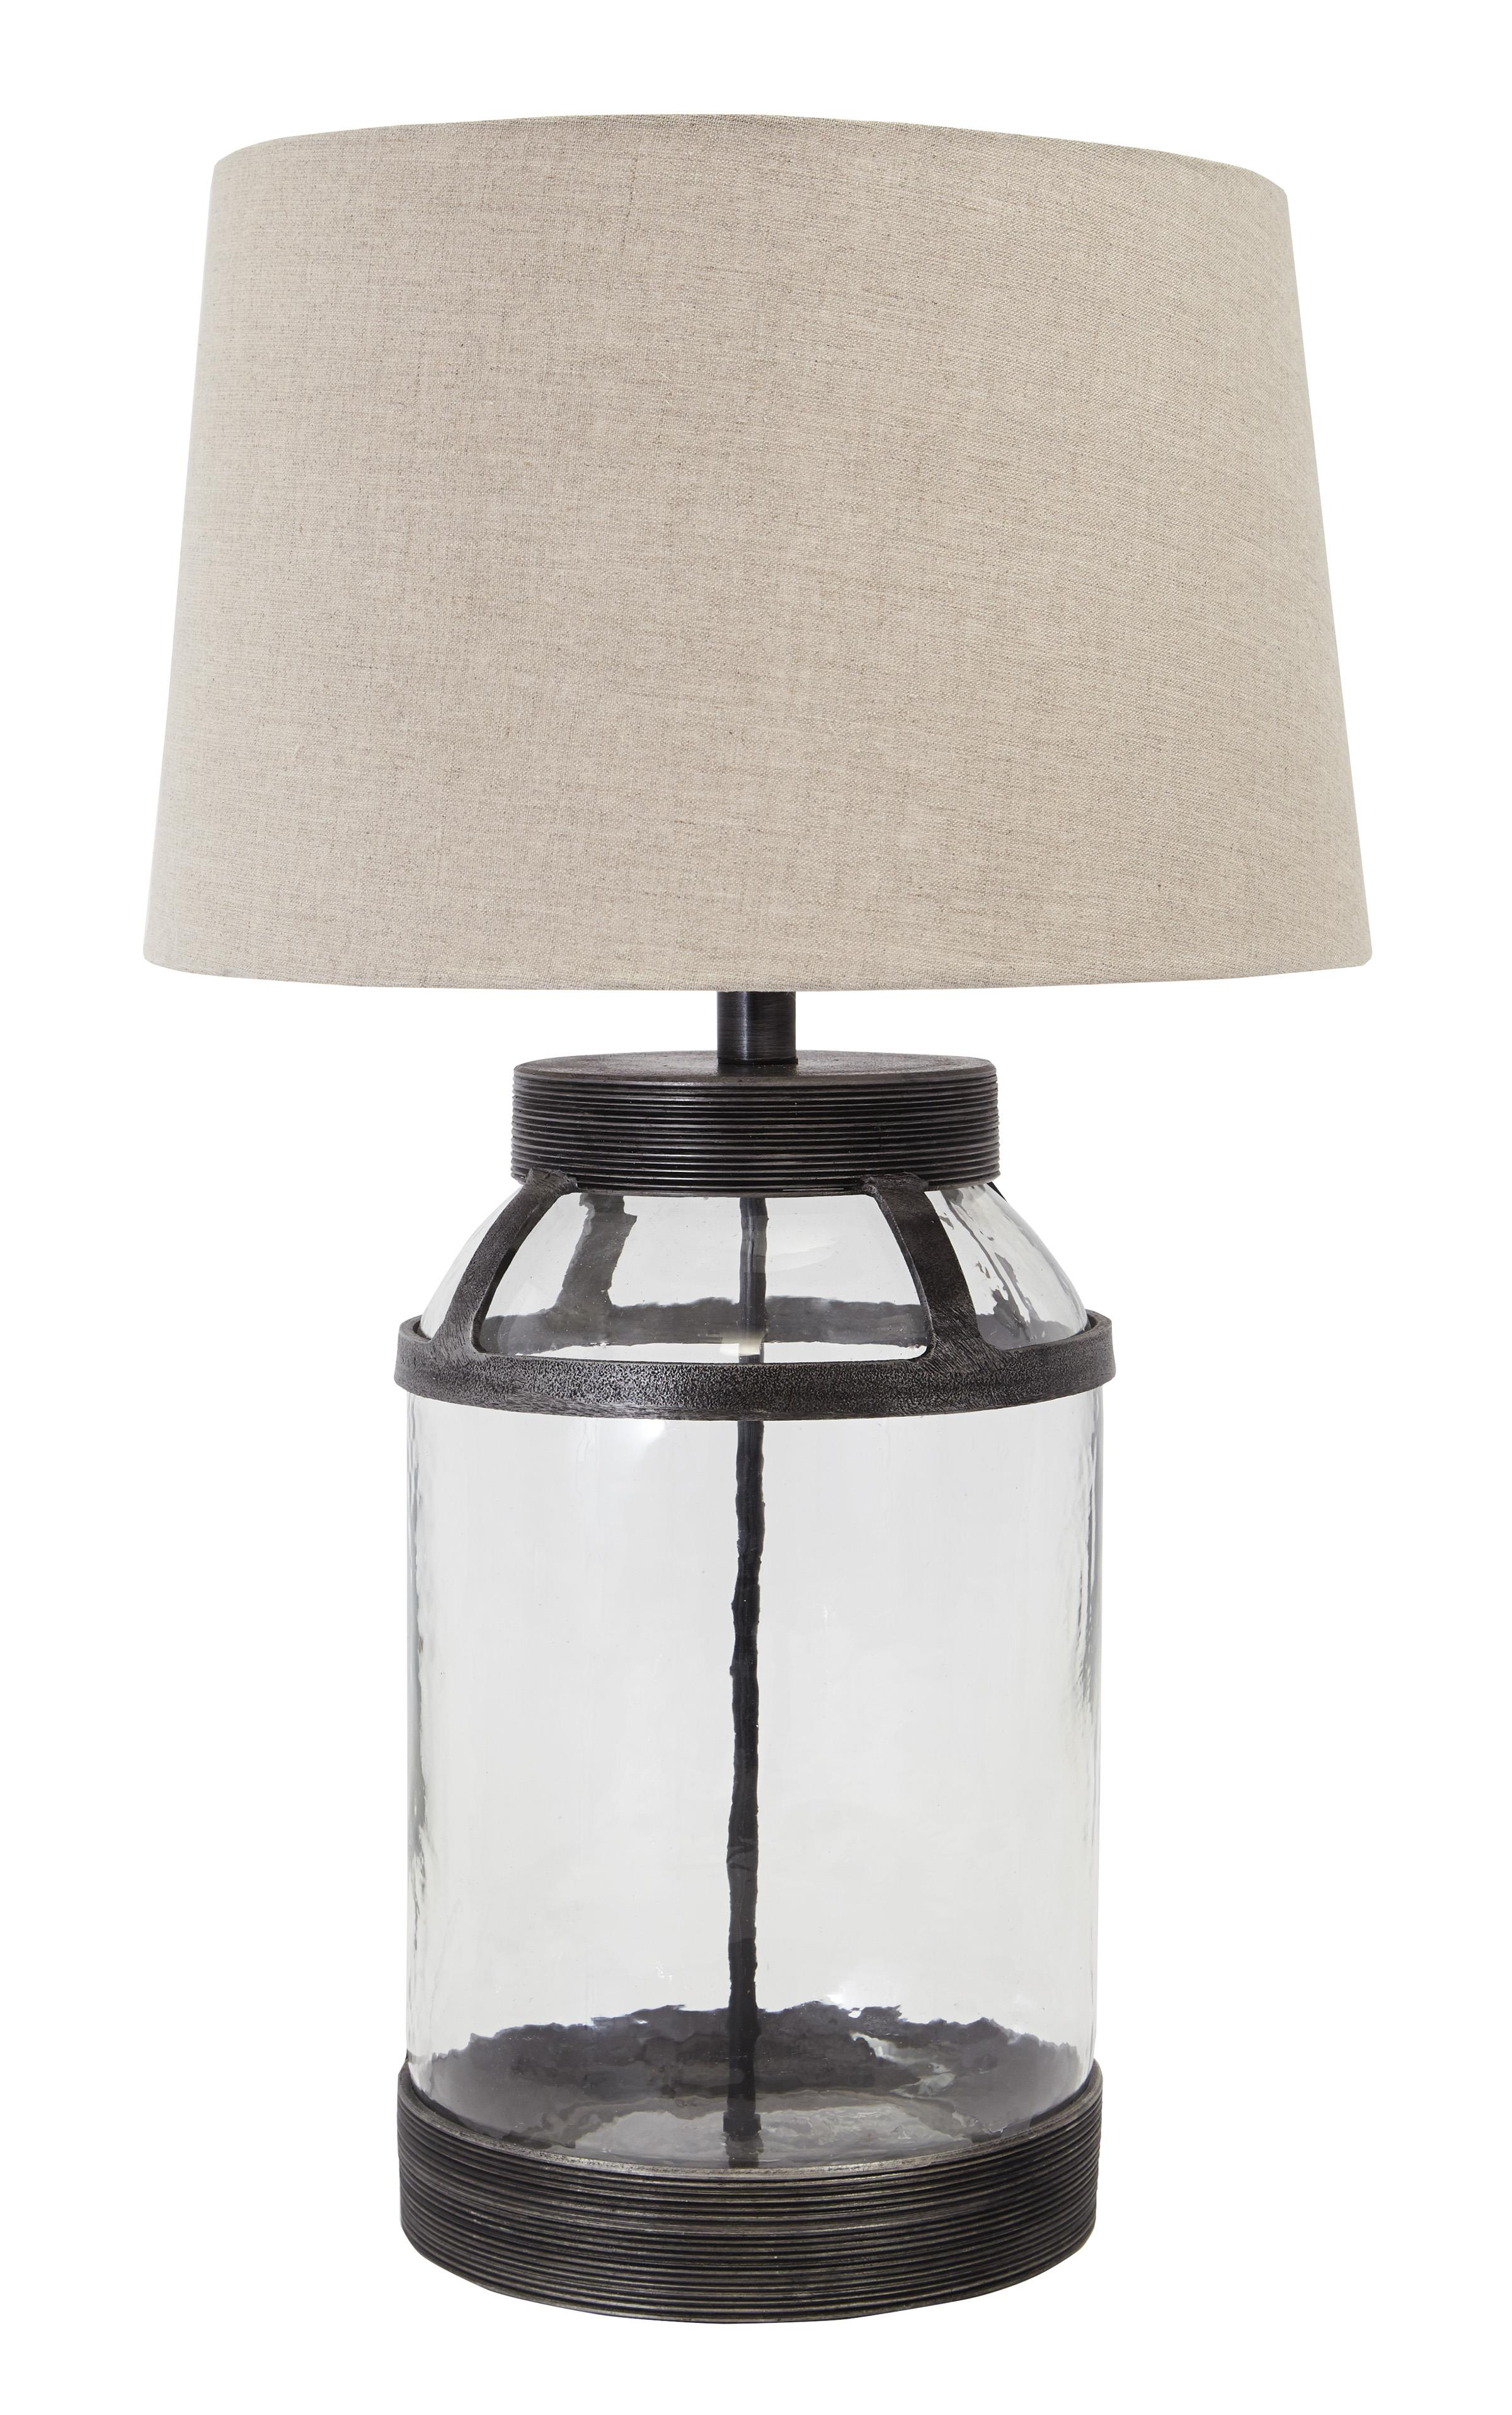 Signature Design by Ashley Lamps - Vintage Style Shanika Transparent Glass Table Lamp - Item Number: L430034